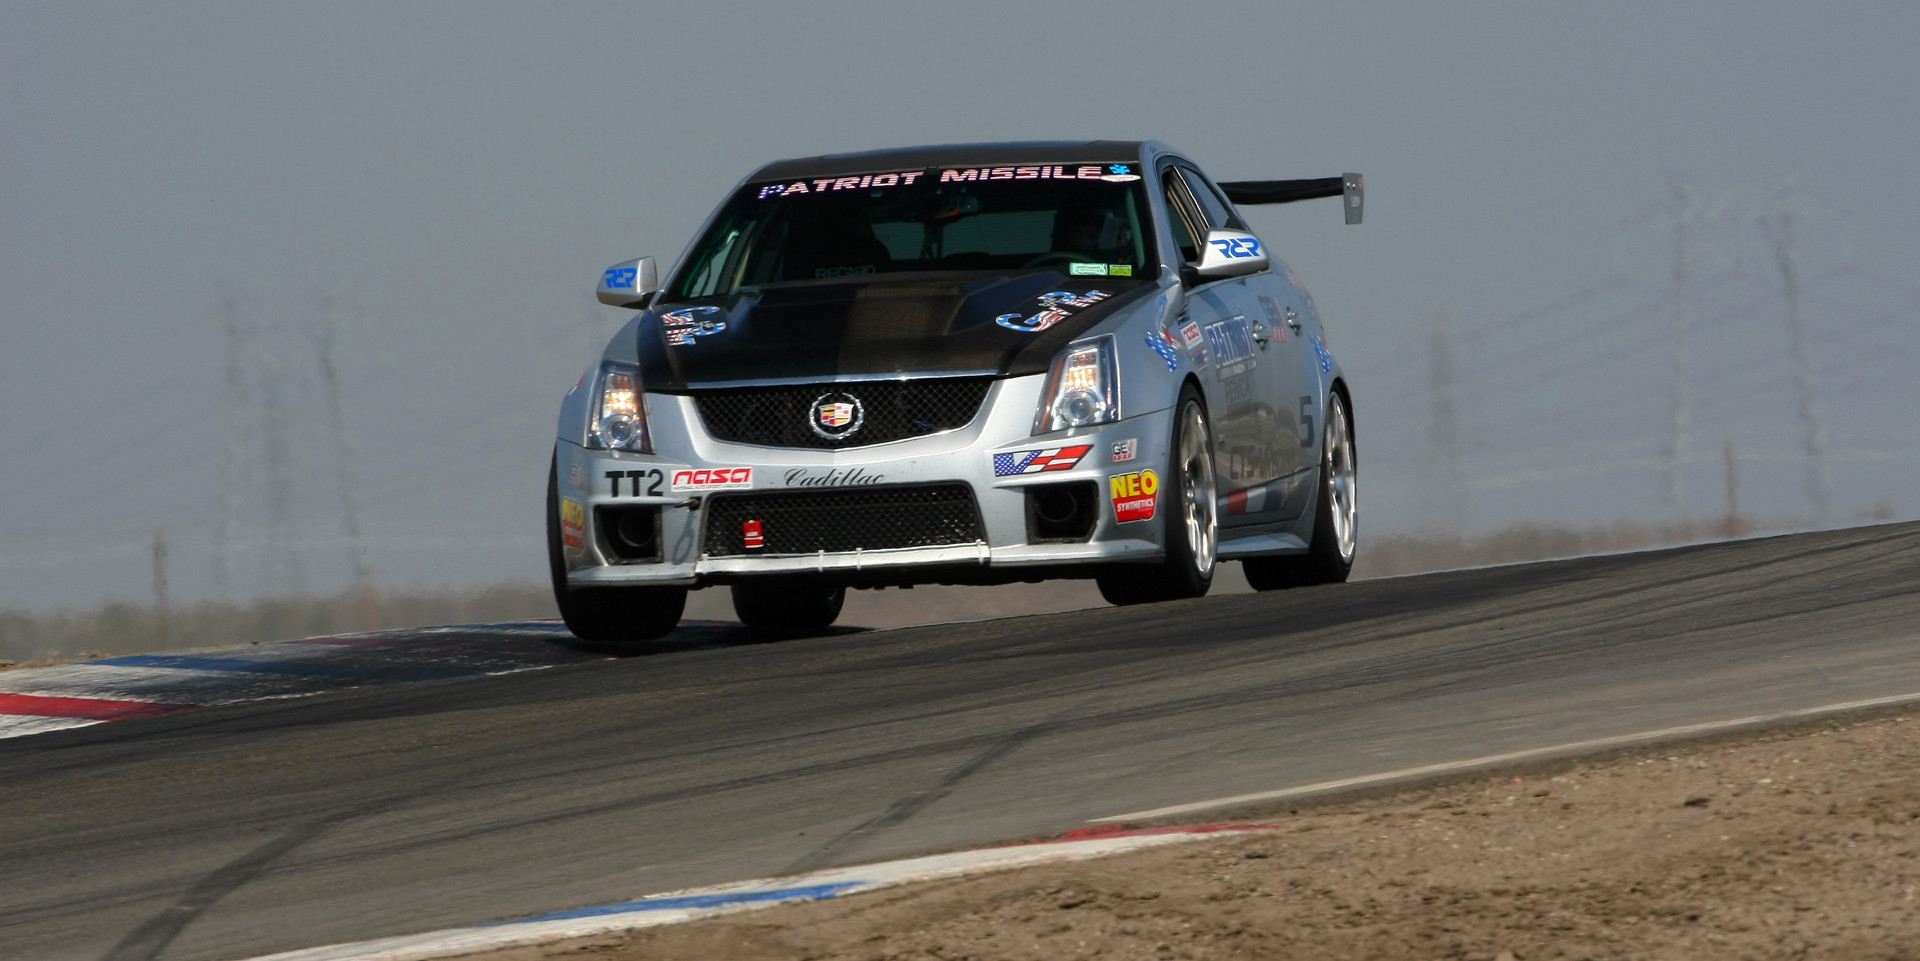 CTS-V Racing on track at Cadillac Challenge: Round 2 at Buttonwillow (3-8-2015)